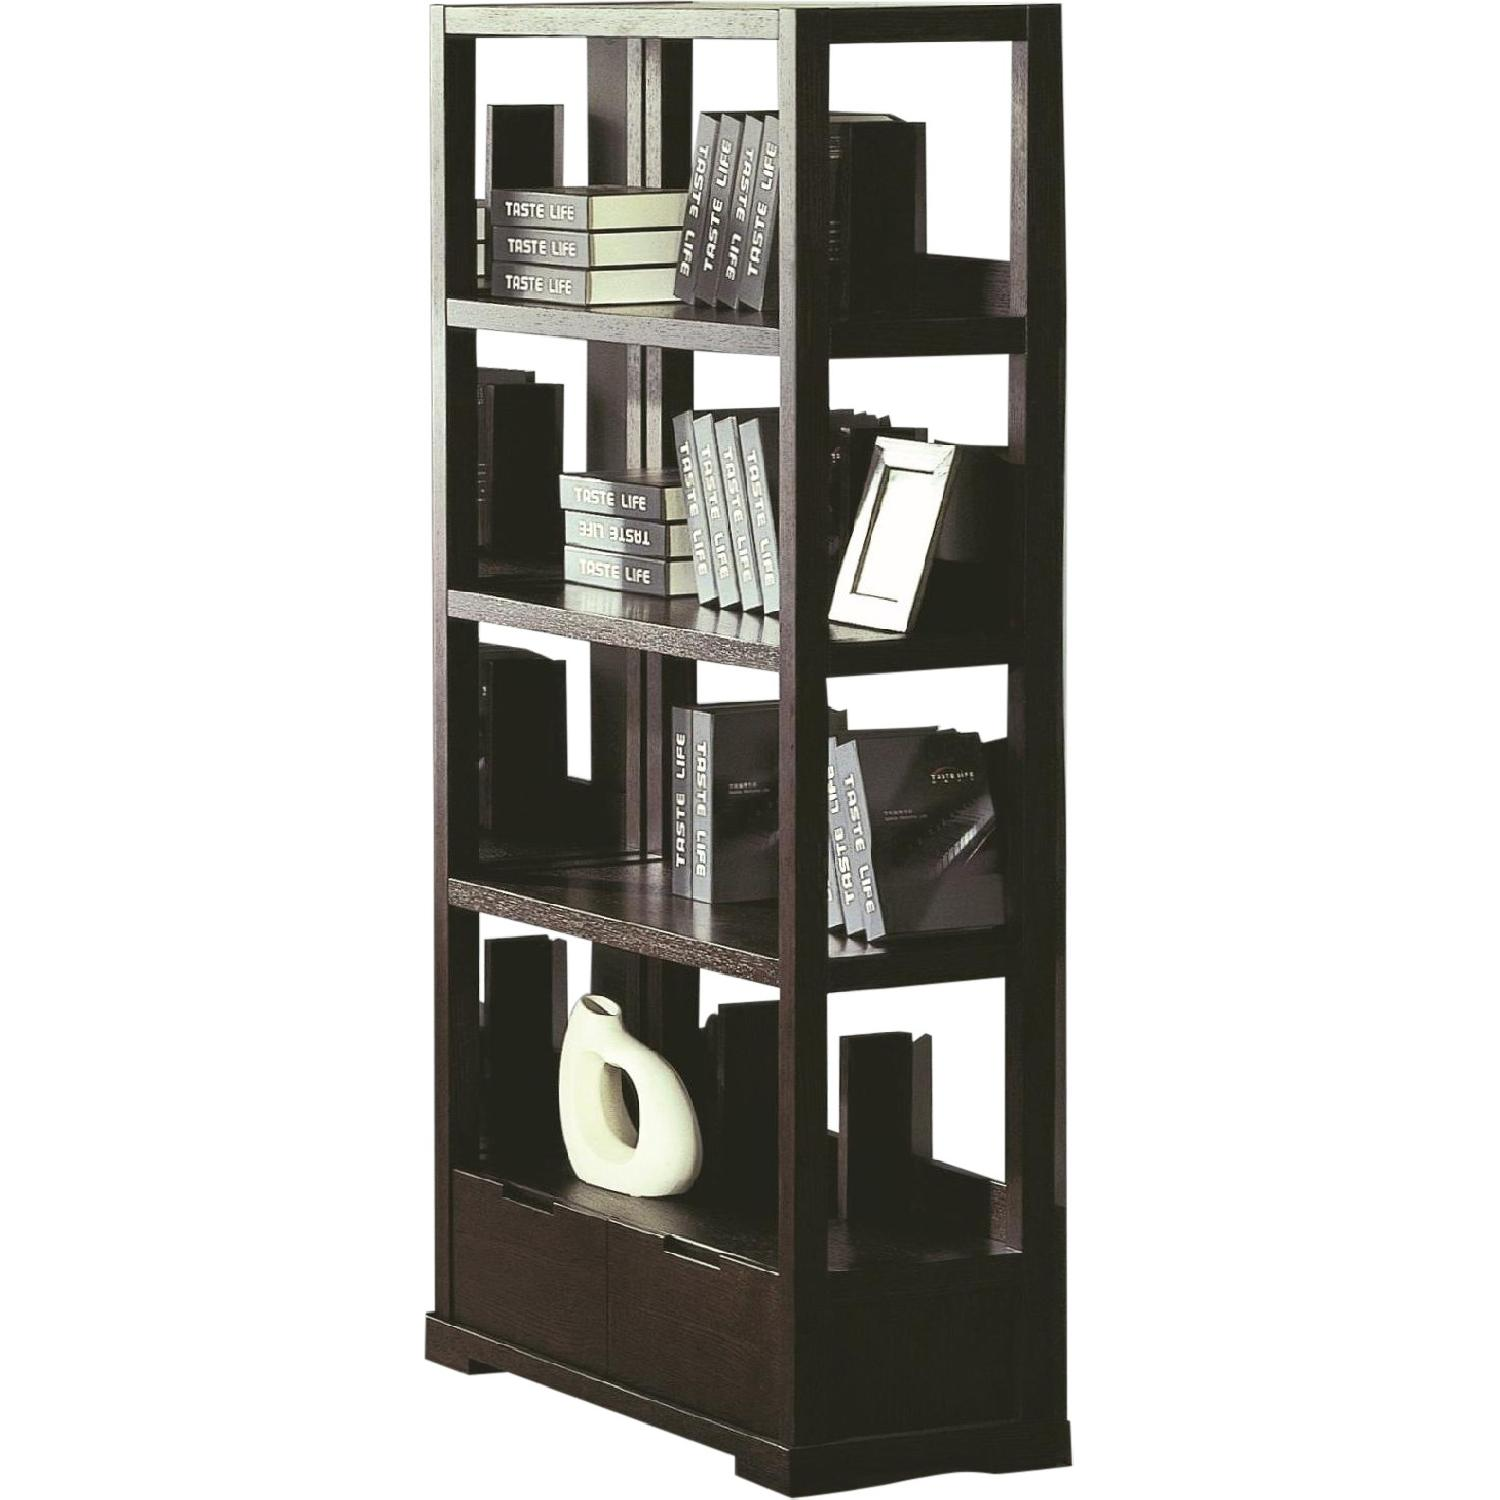 Modern Style Bookcase in Wenge Finish w/ Bottom Utility Drawer